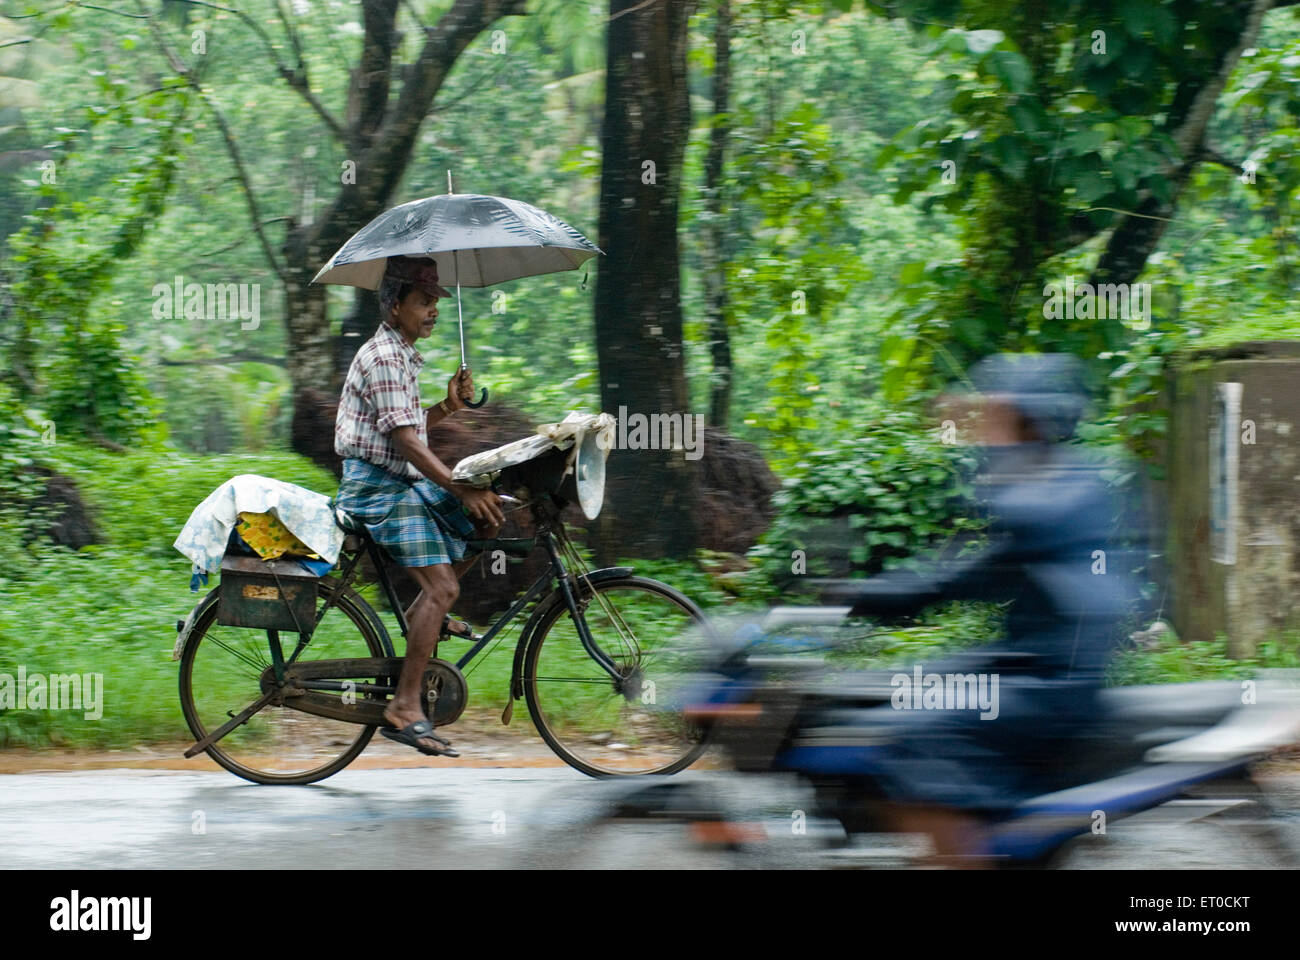 Lottery ticket seller riding bicycle with umbrella in rain ; Kerala ; India - Stock Image